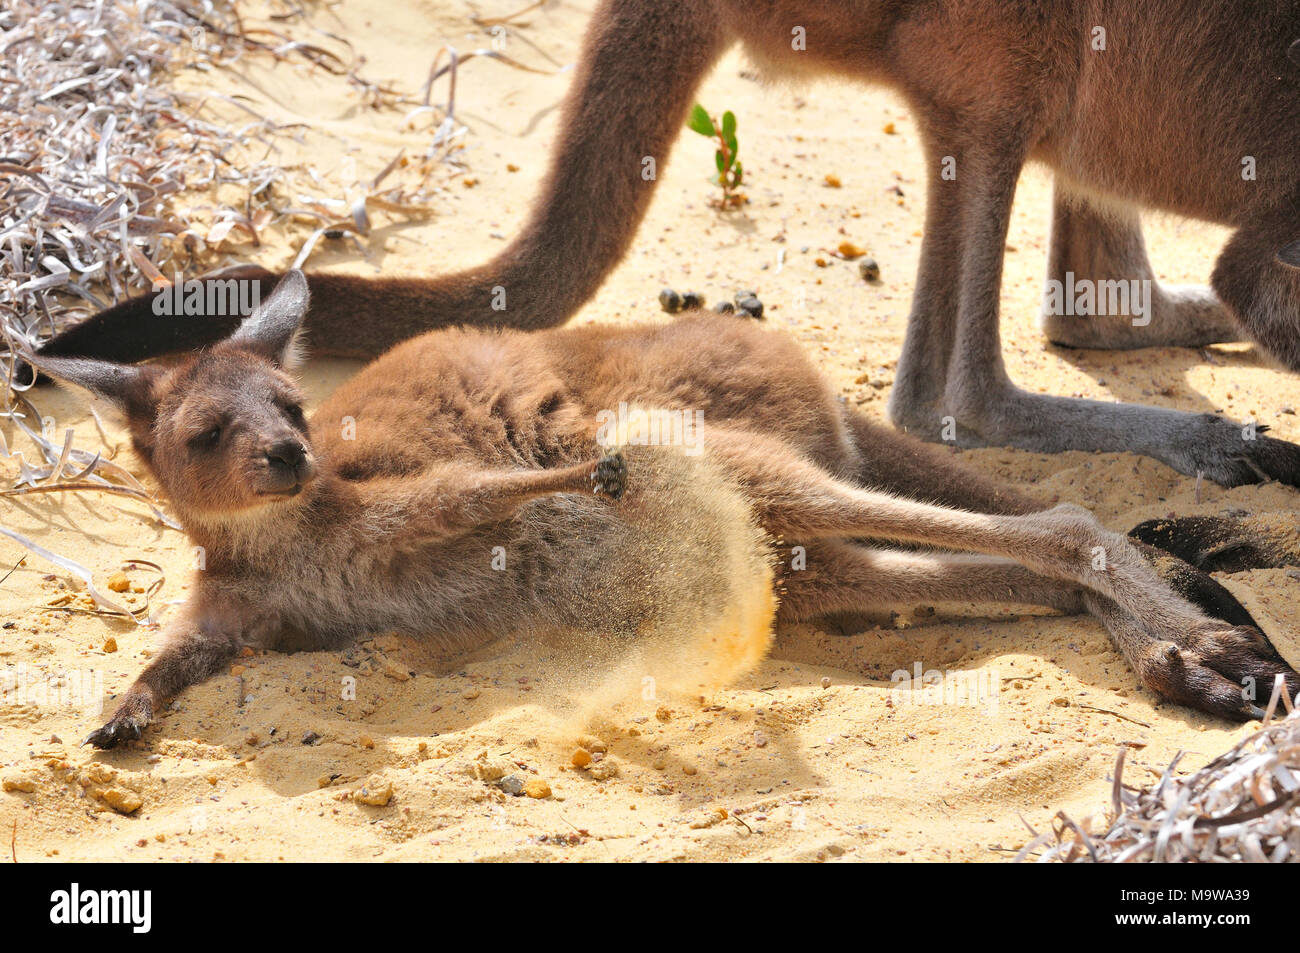 Mother and baby (joey) kangaroo in Lucky Bay campsite in the Cape Le Grand National Park, on the south coast of Western Australia Stock Photo